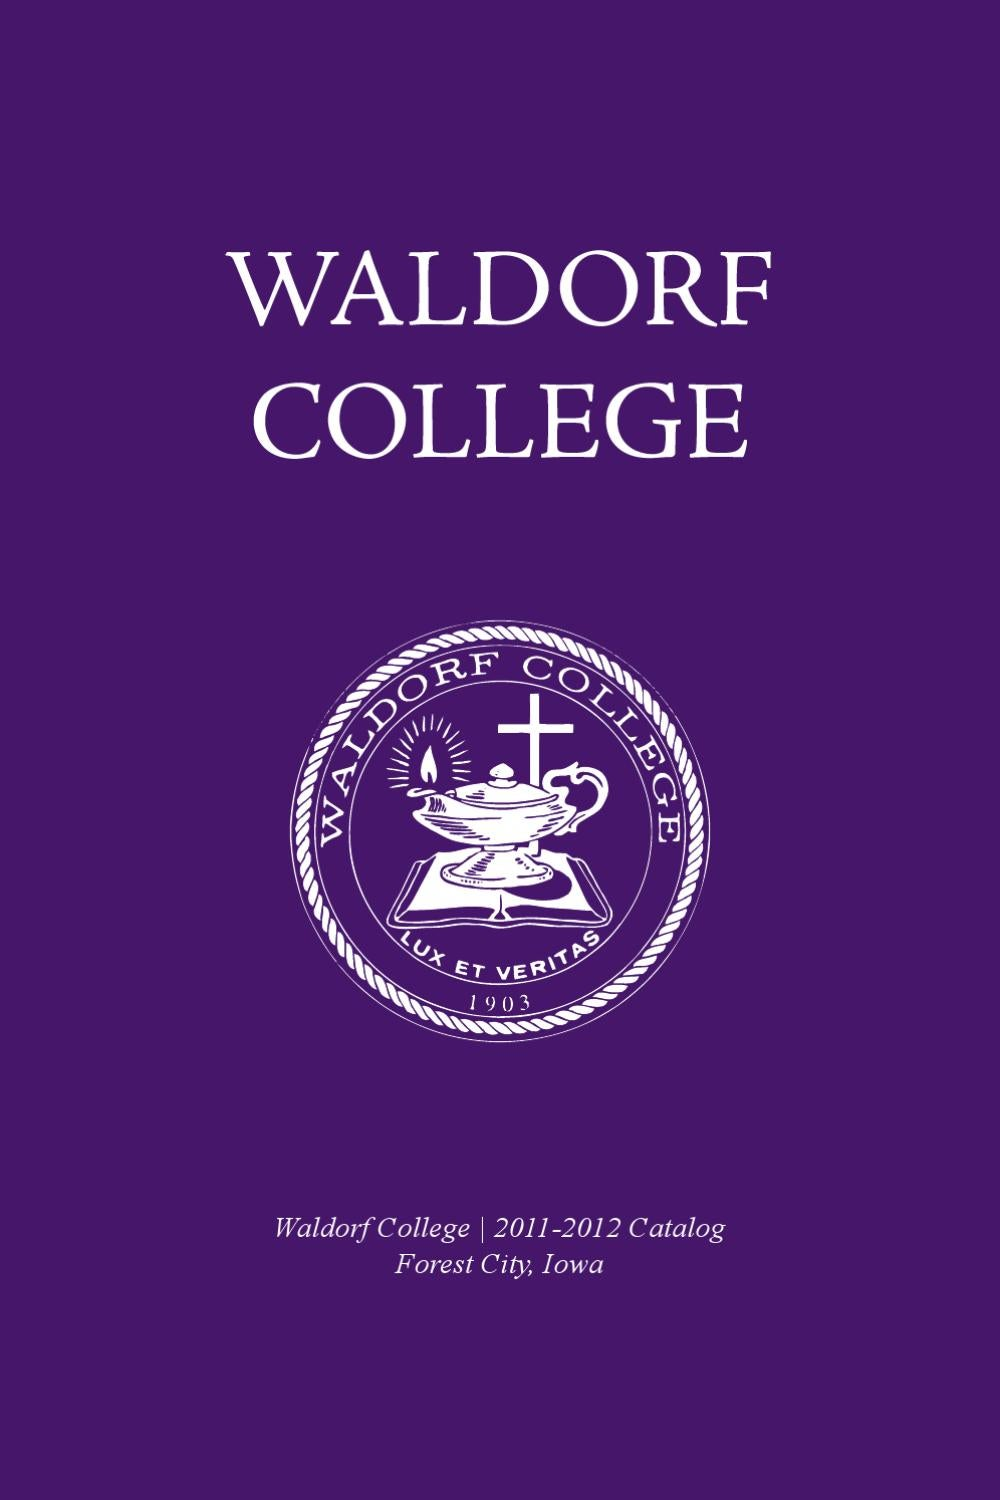 Waldorf College Catalog, 2011-2012 by Waldorf University ...